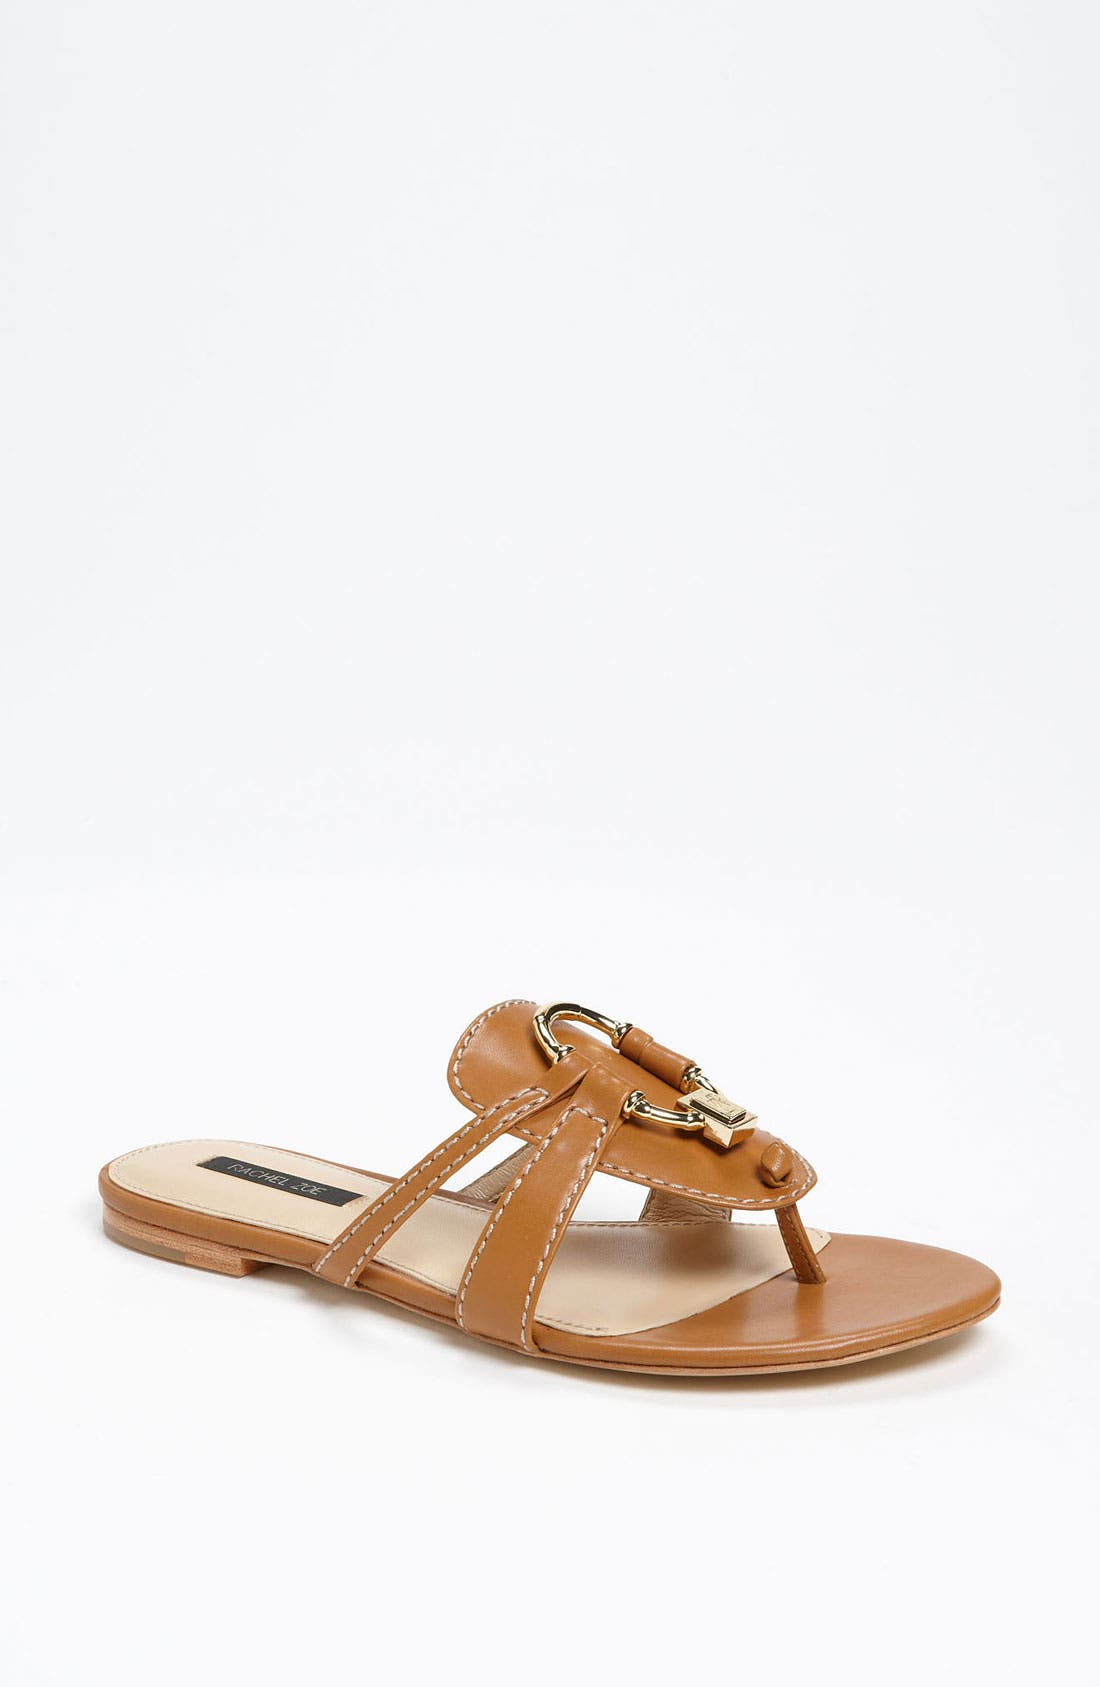 Alternate Image 1 Selected - Rachel Zoe 'Gina' Flat Sandal